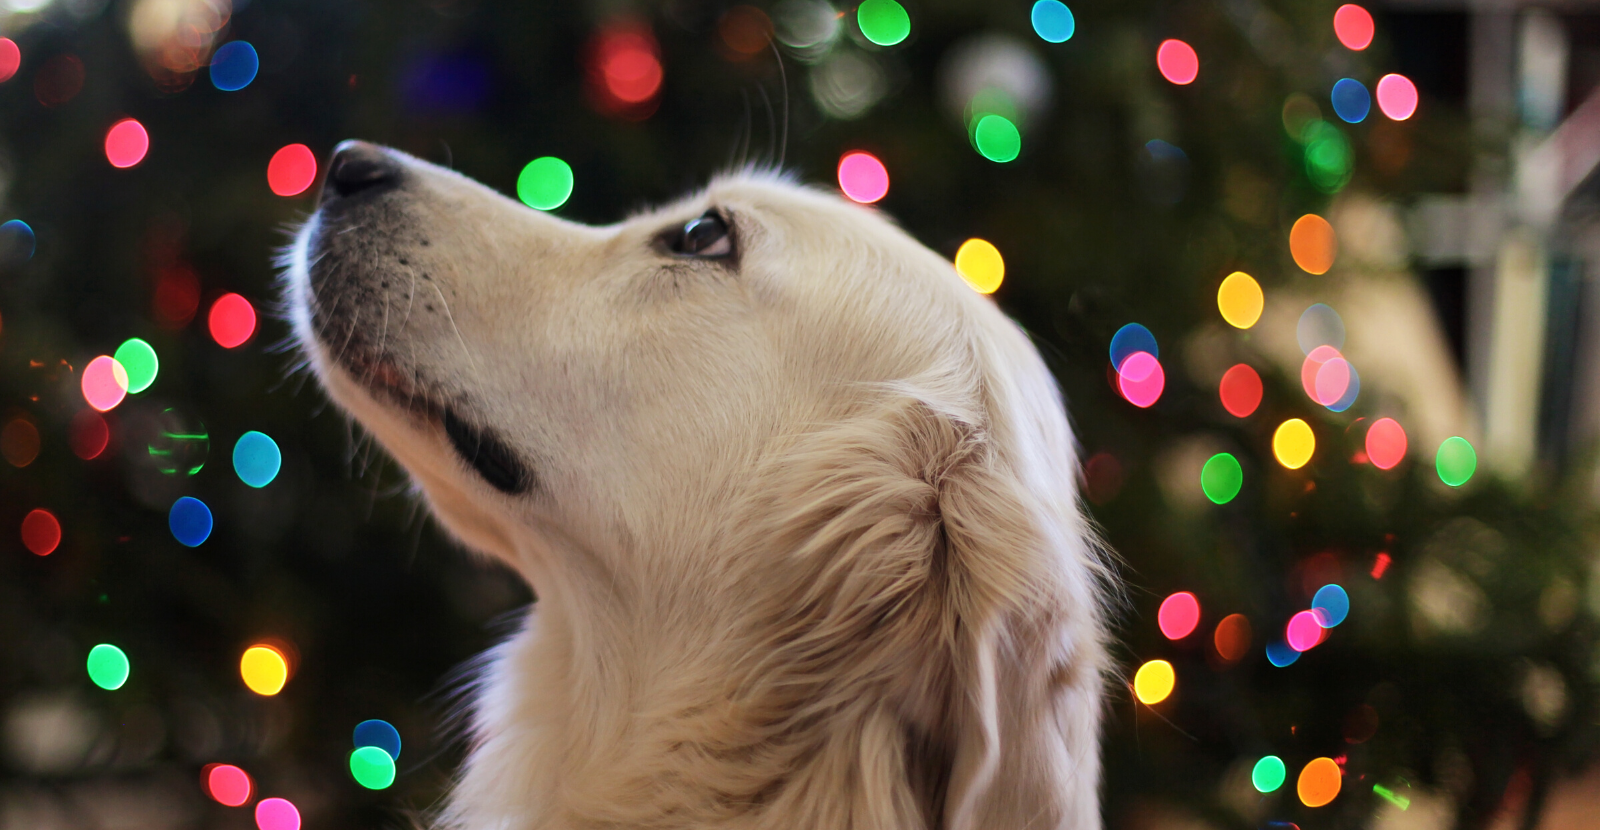 5 Tips for Safe Holiday Travel with Your Pet